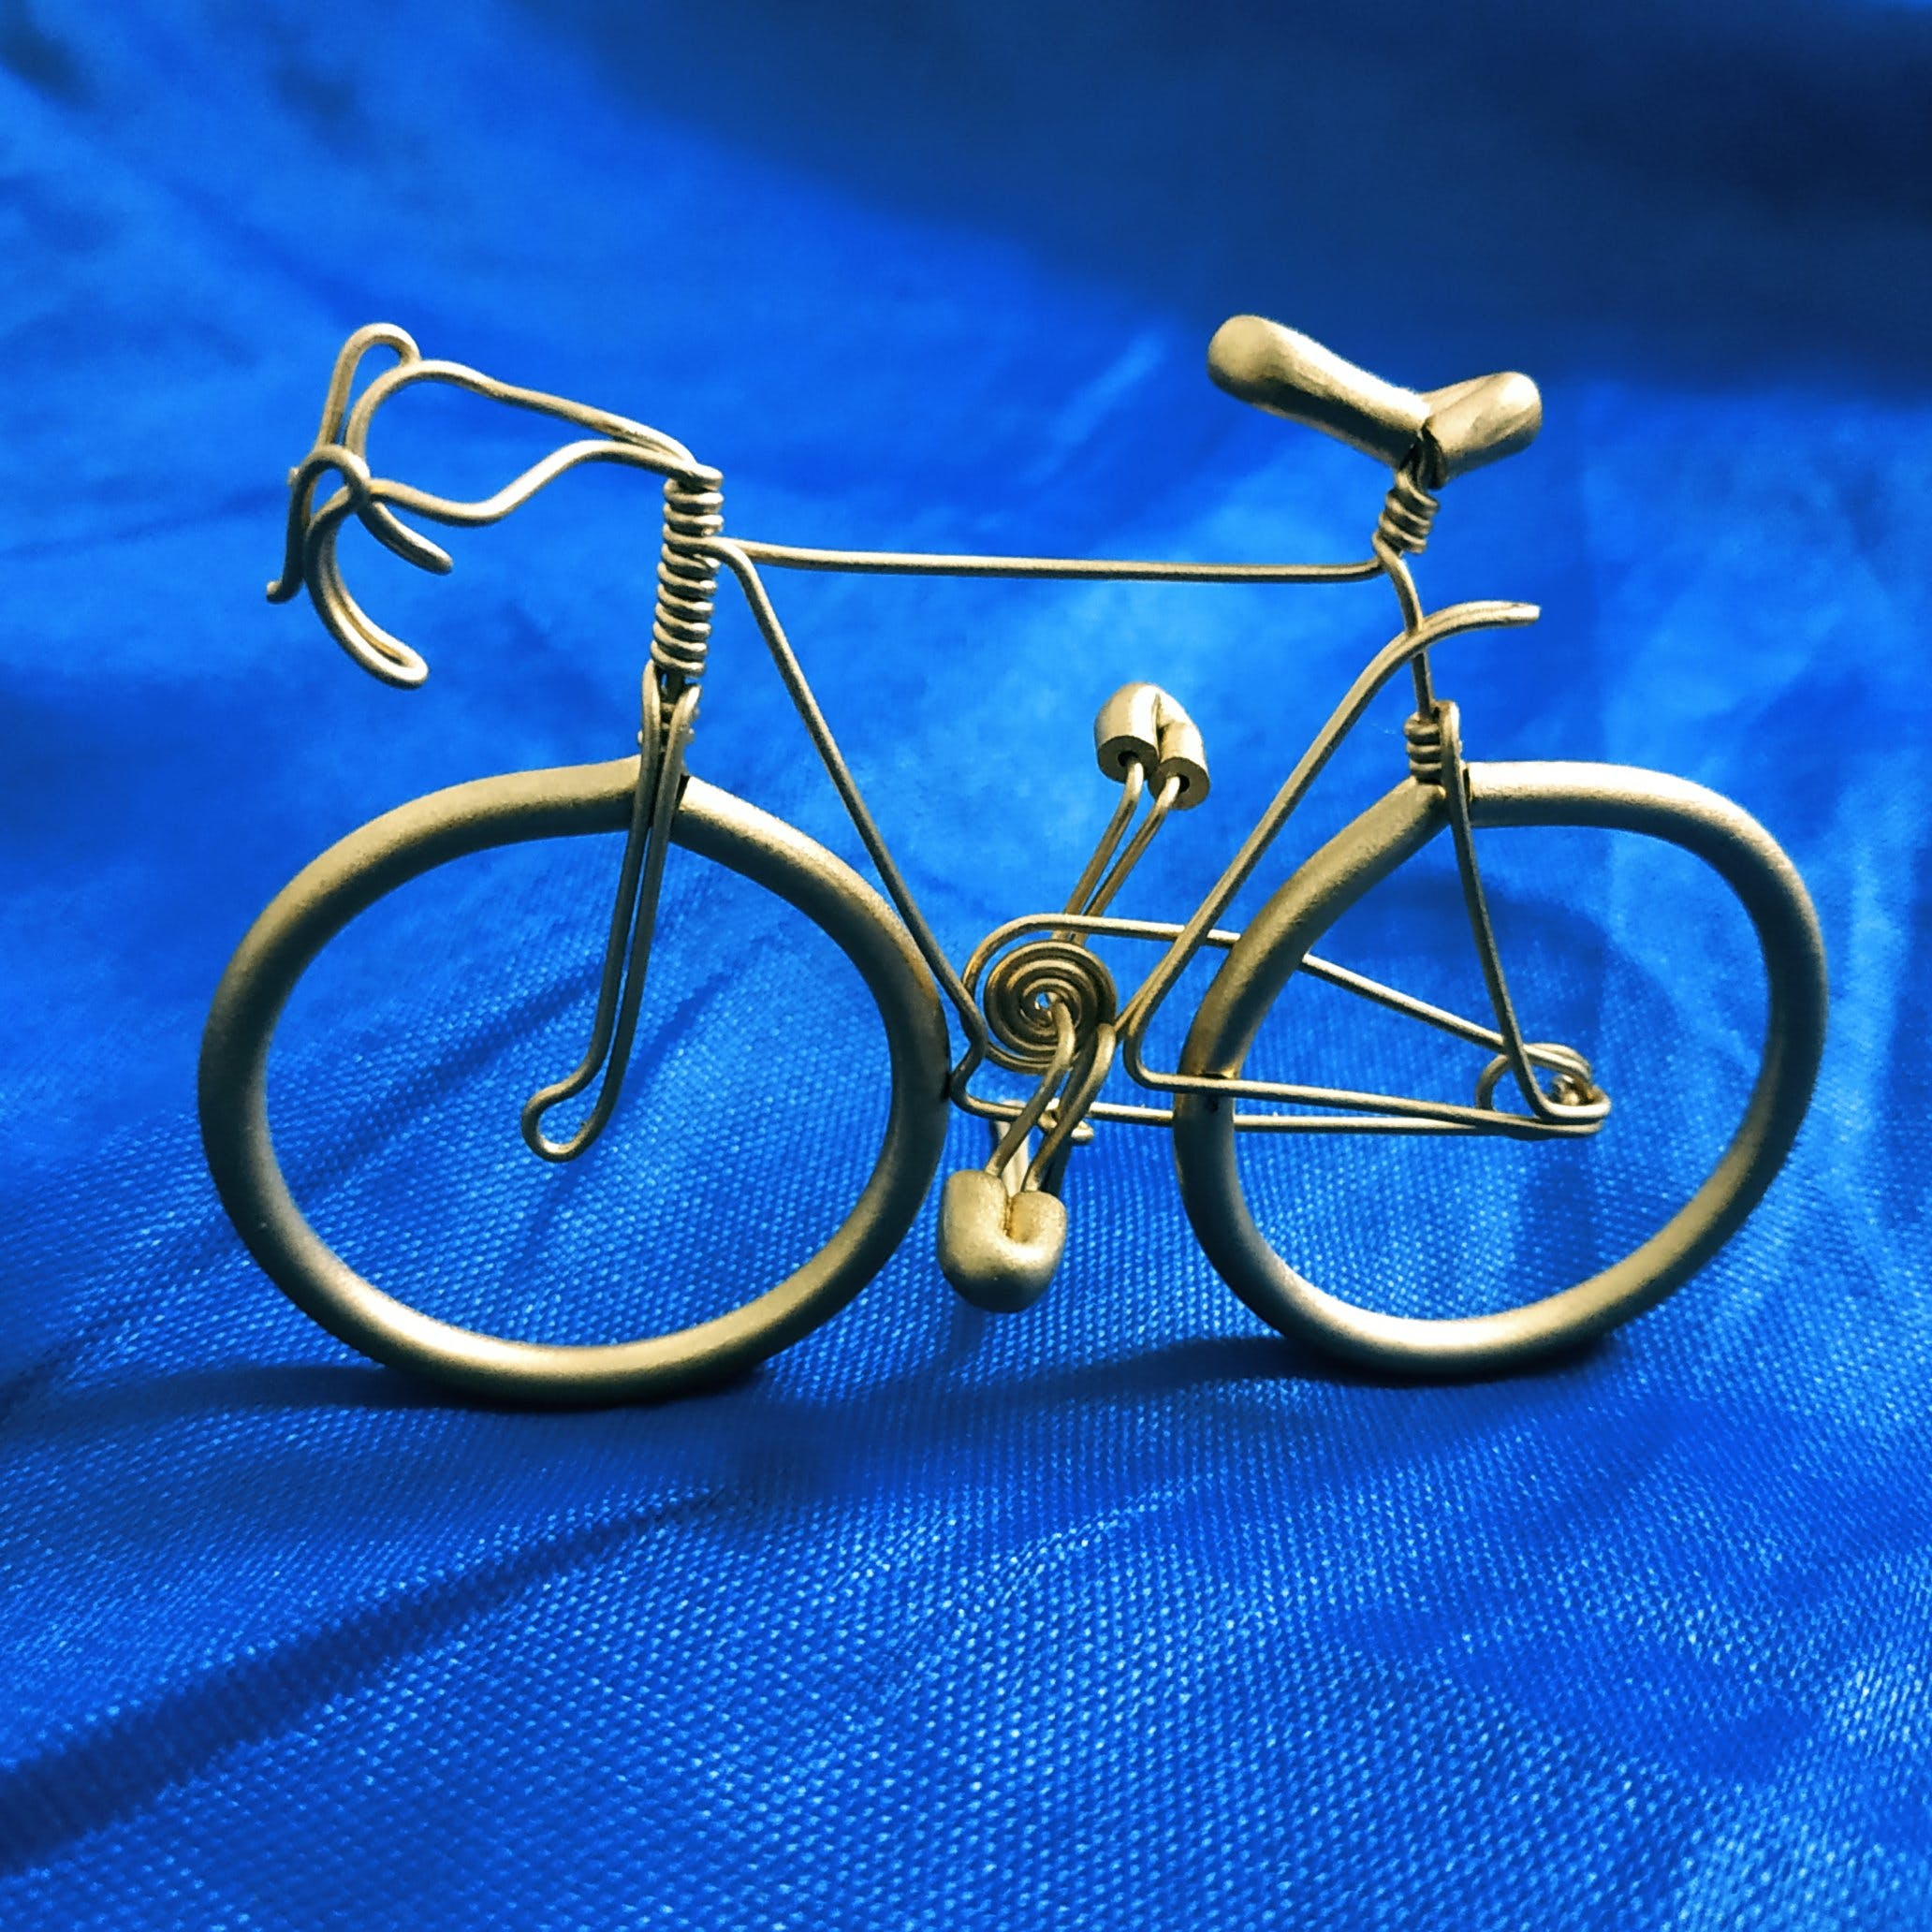 Free stock photo of blue, cute, cycle, freestyle